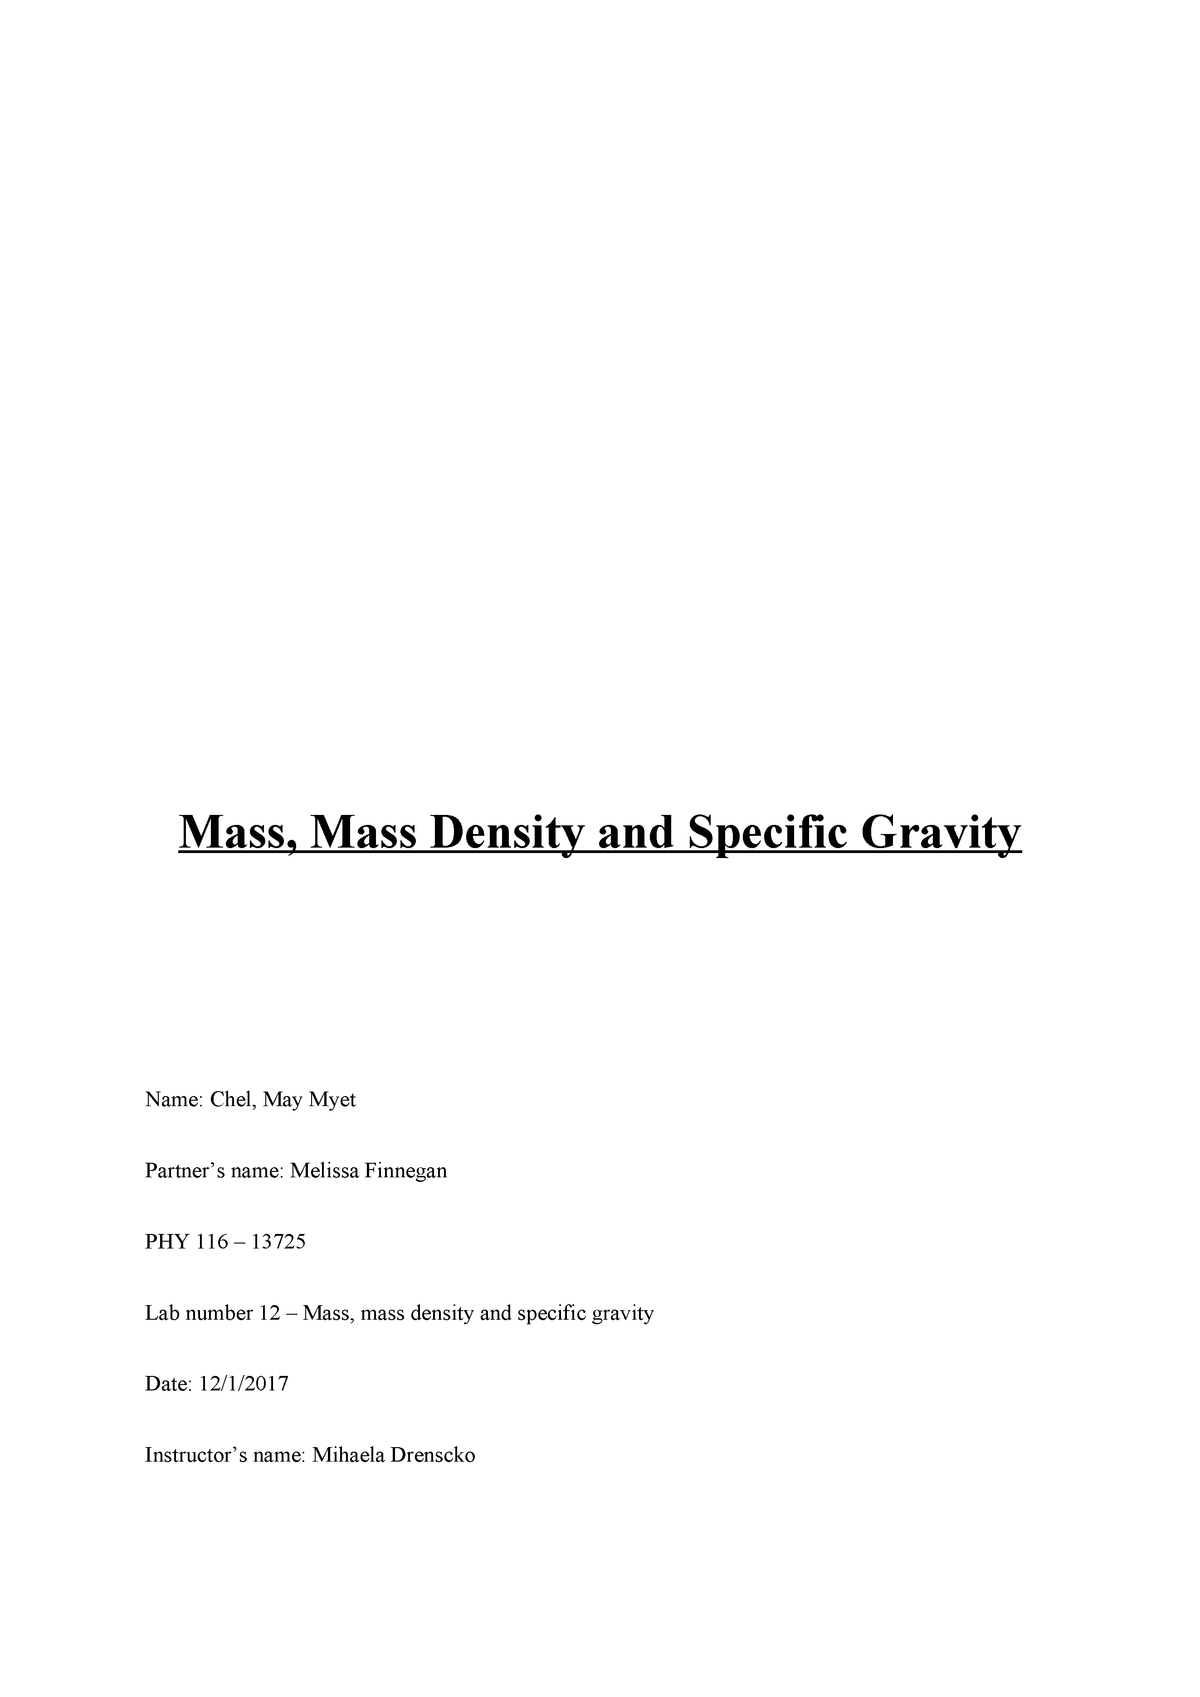 Mass, mass density and specific gravity - PHY 116: Physics I